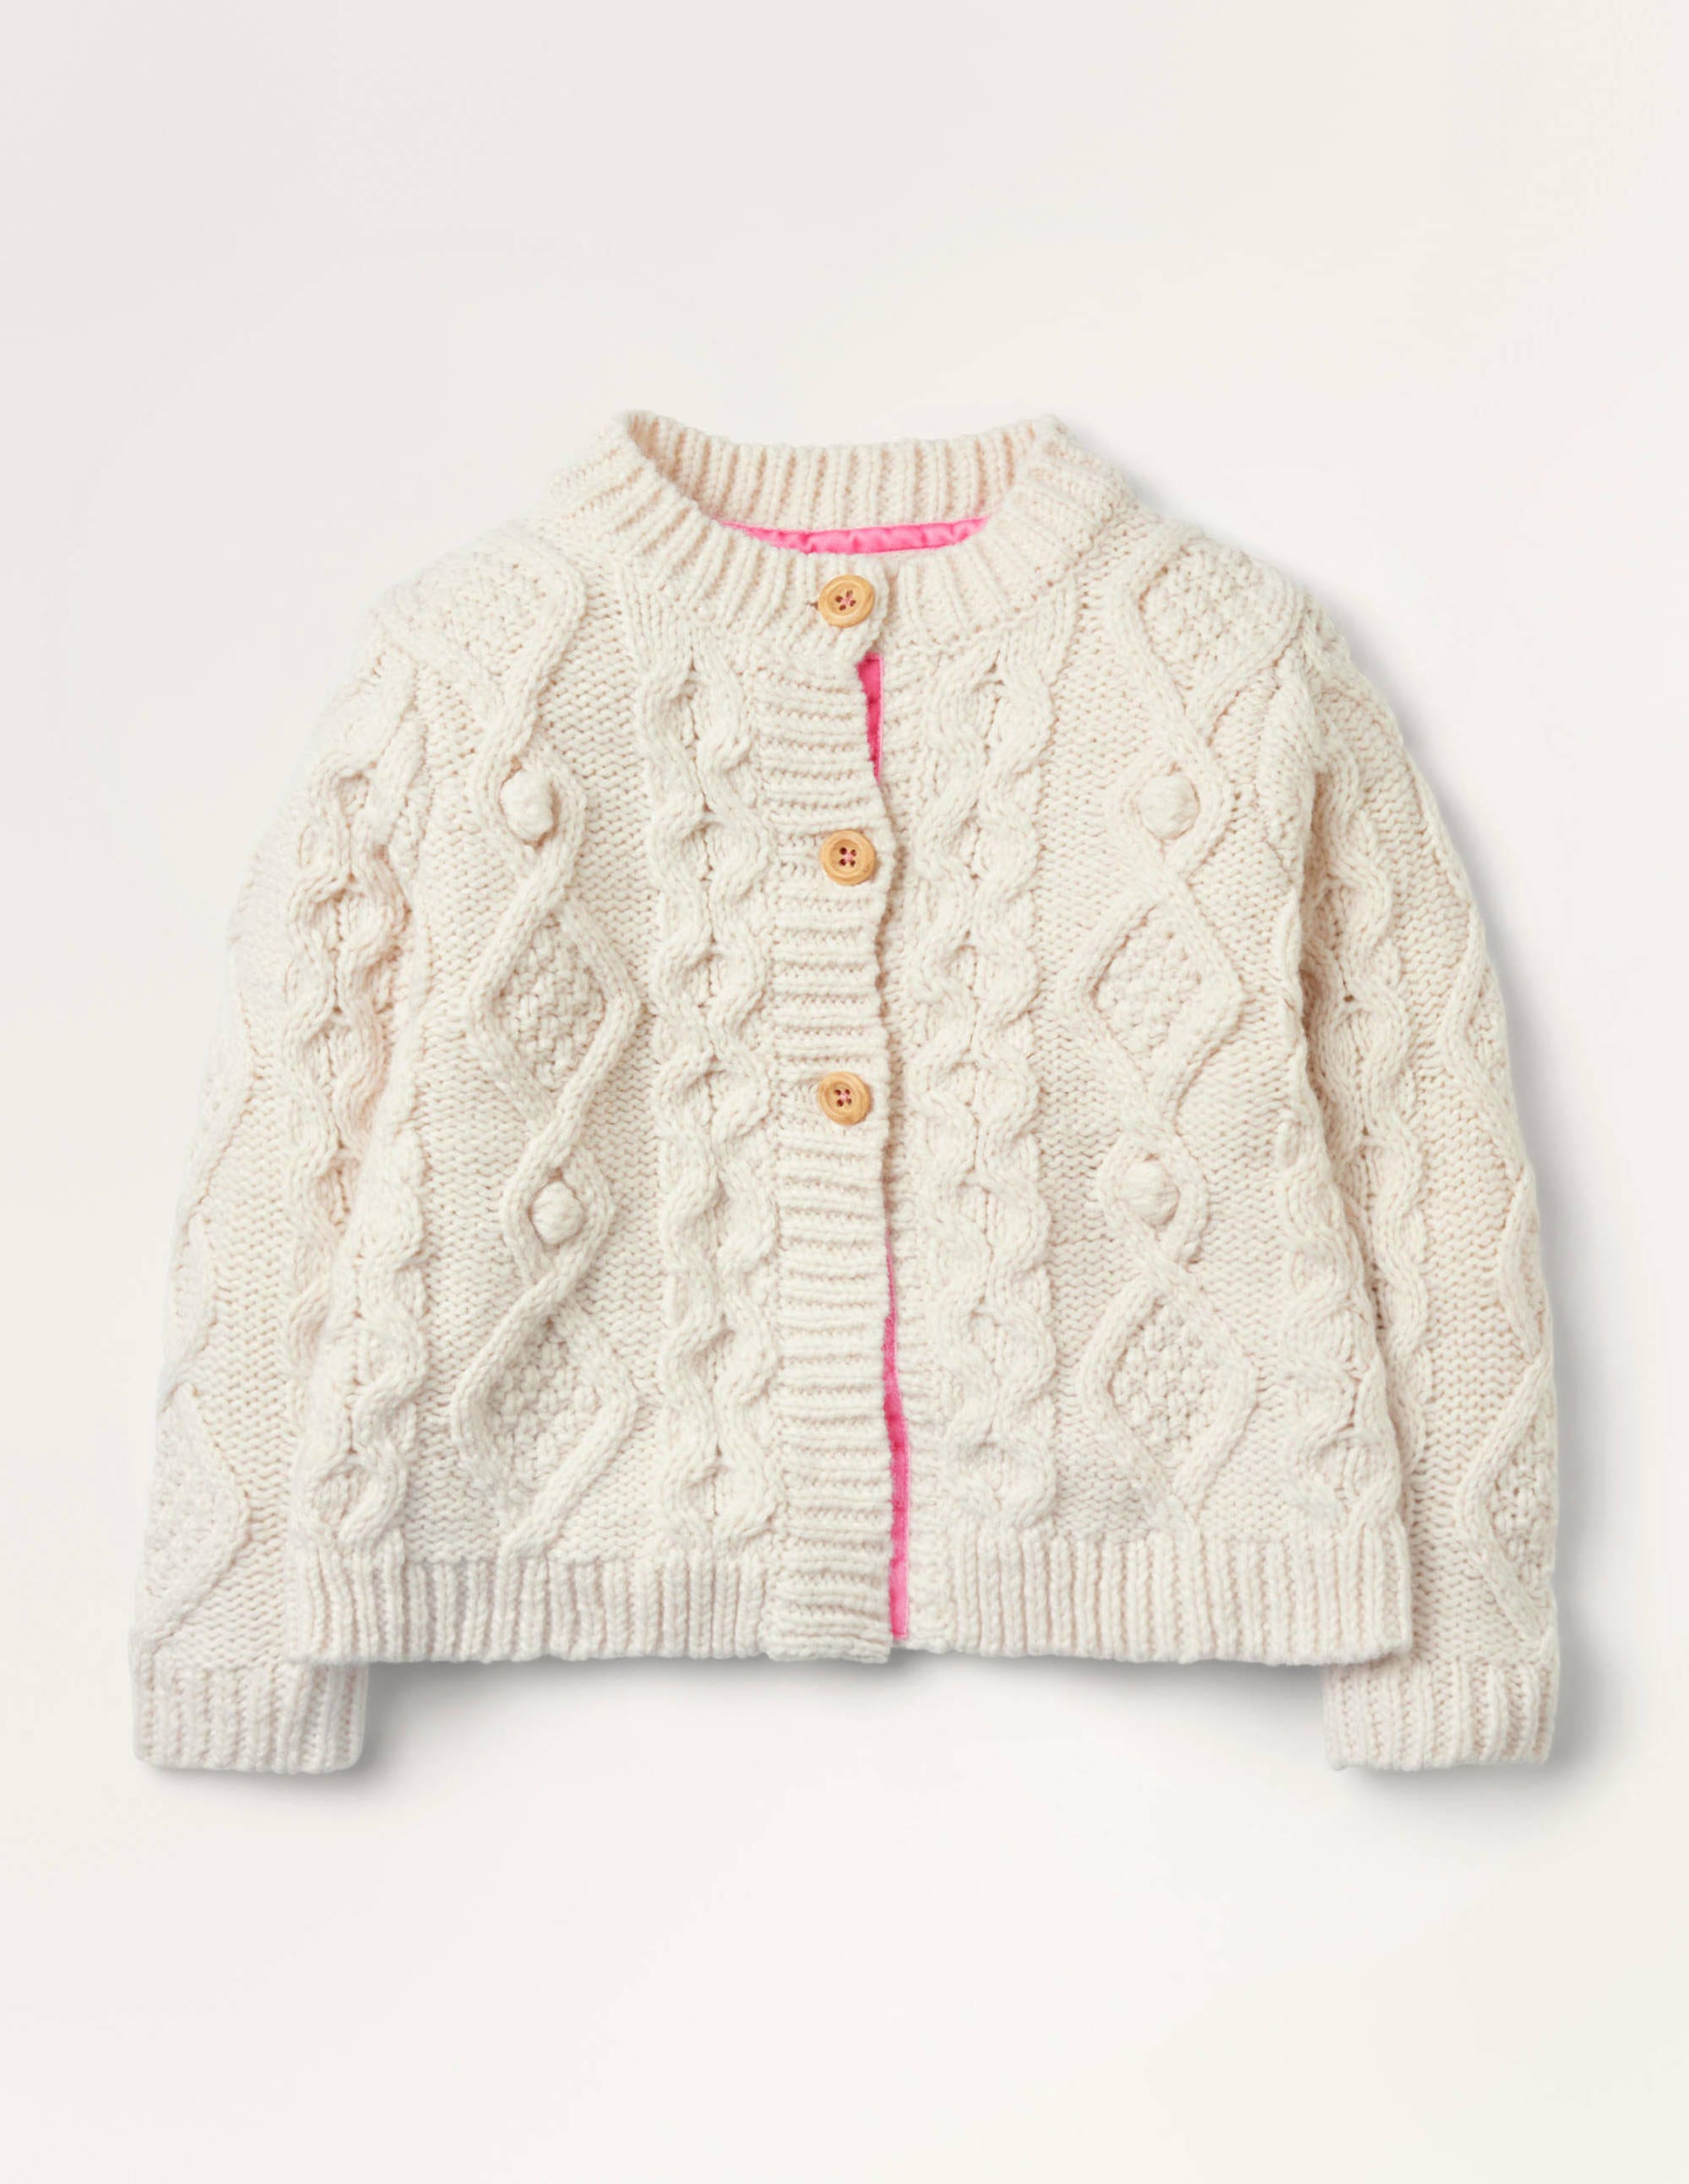 Crochet girls coat with toggle buttons.Age 7 to 8 years old.Free postage to UK